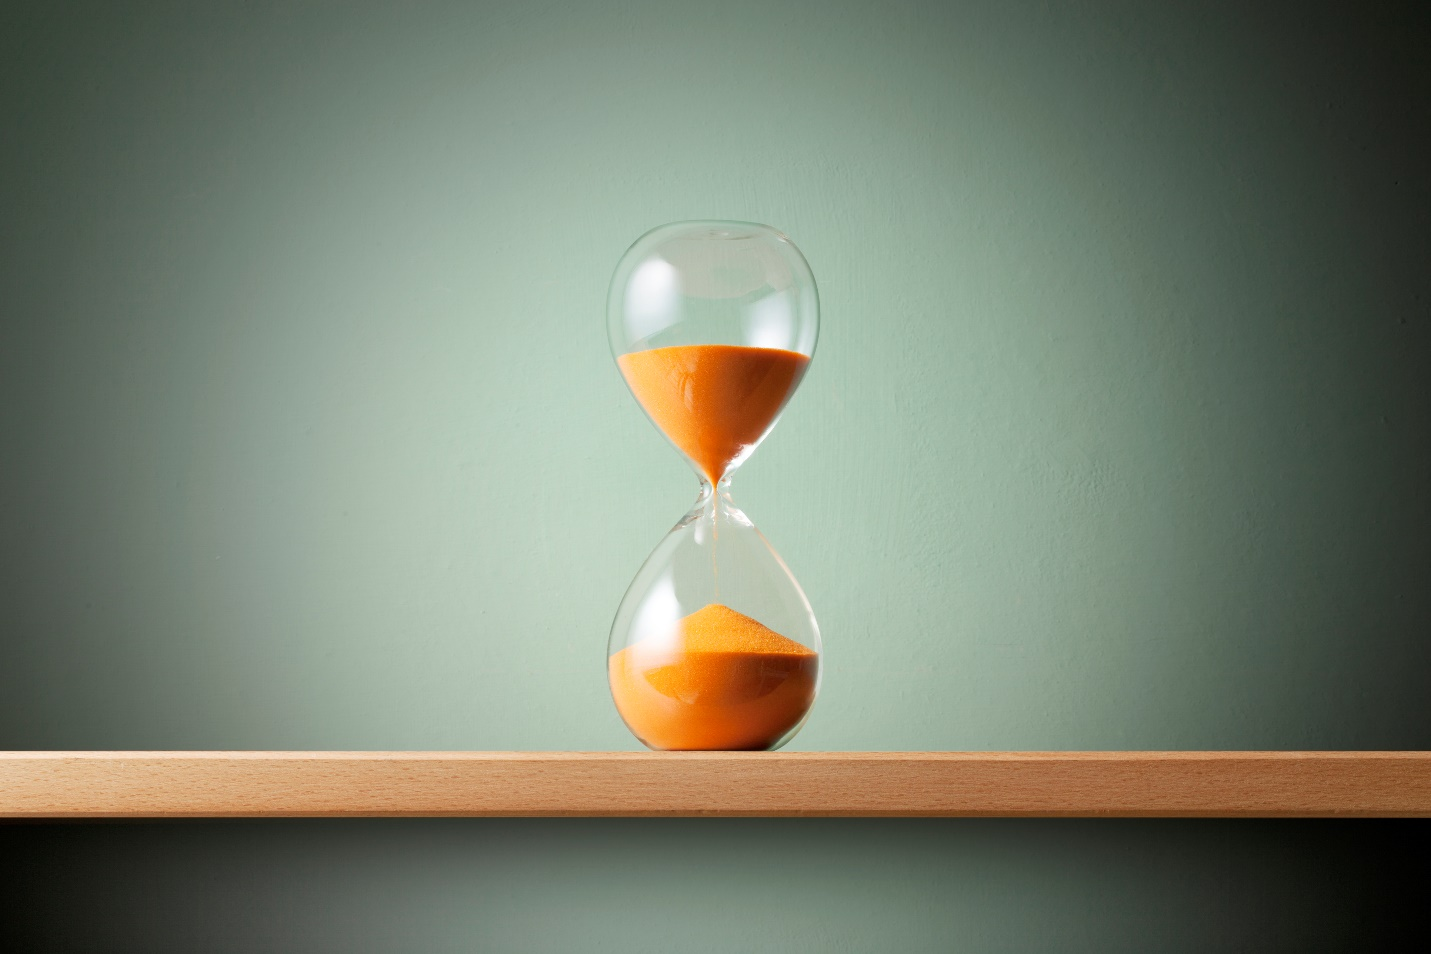 Hourglass on a flat surface